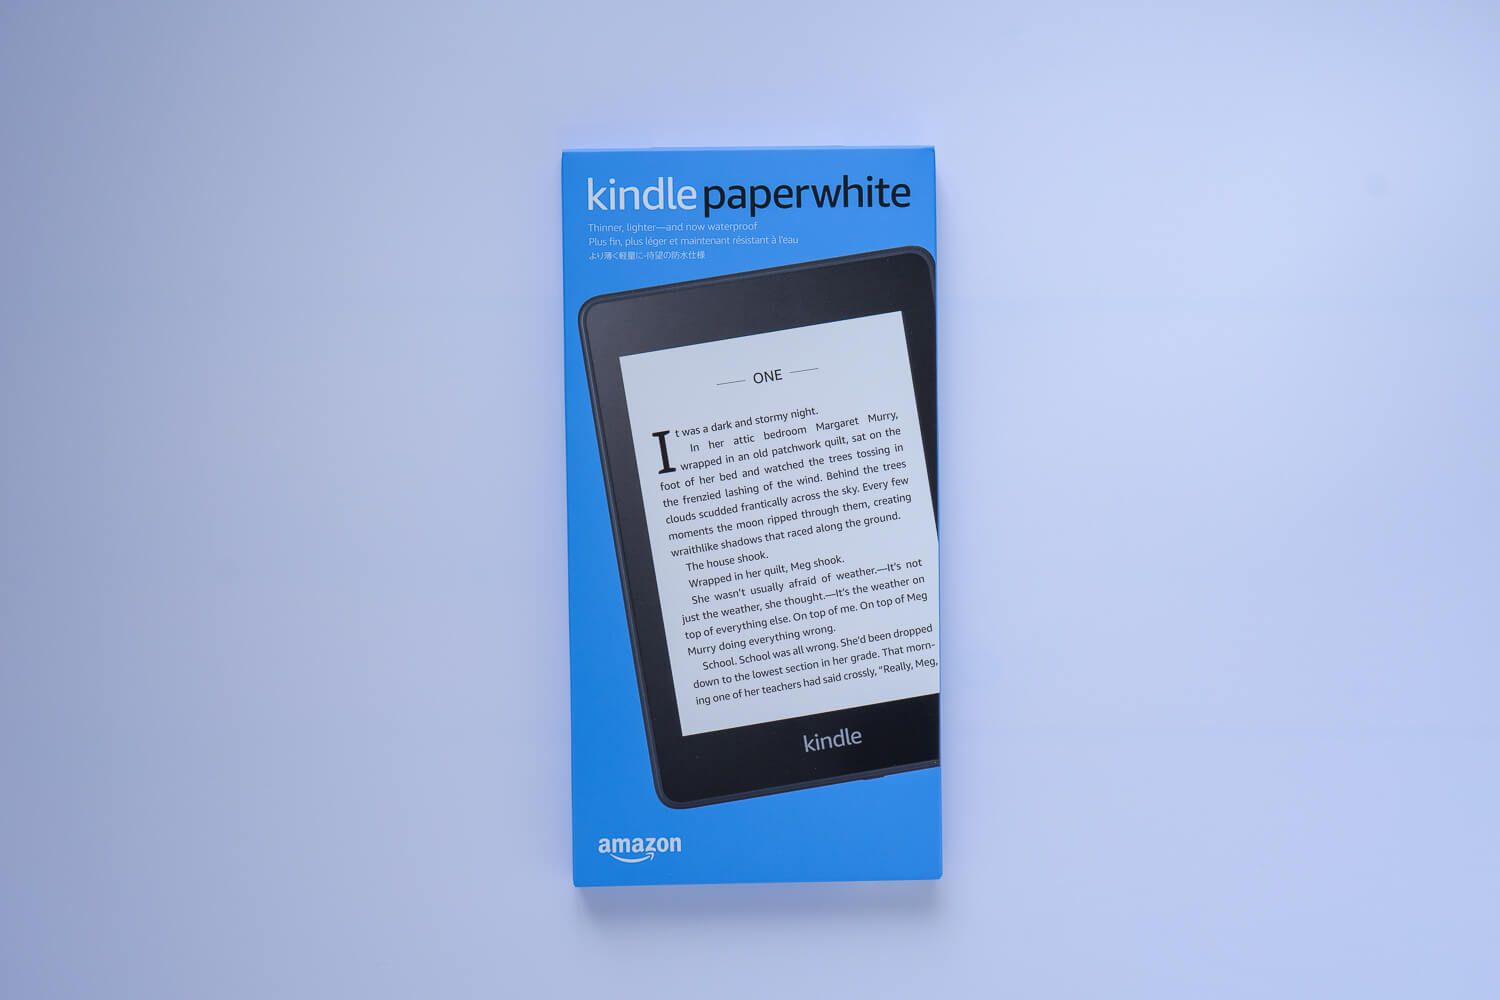 181207 kindle paperwhite 5